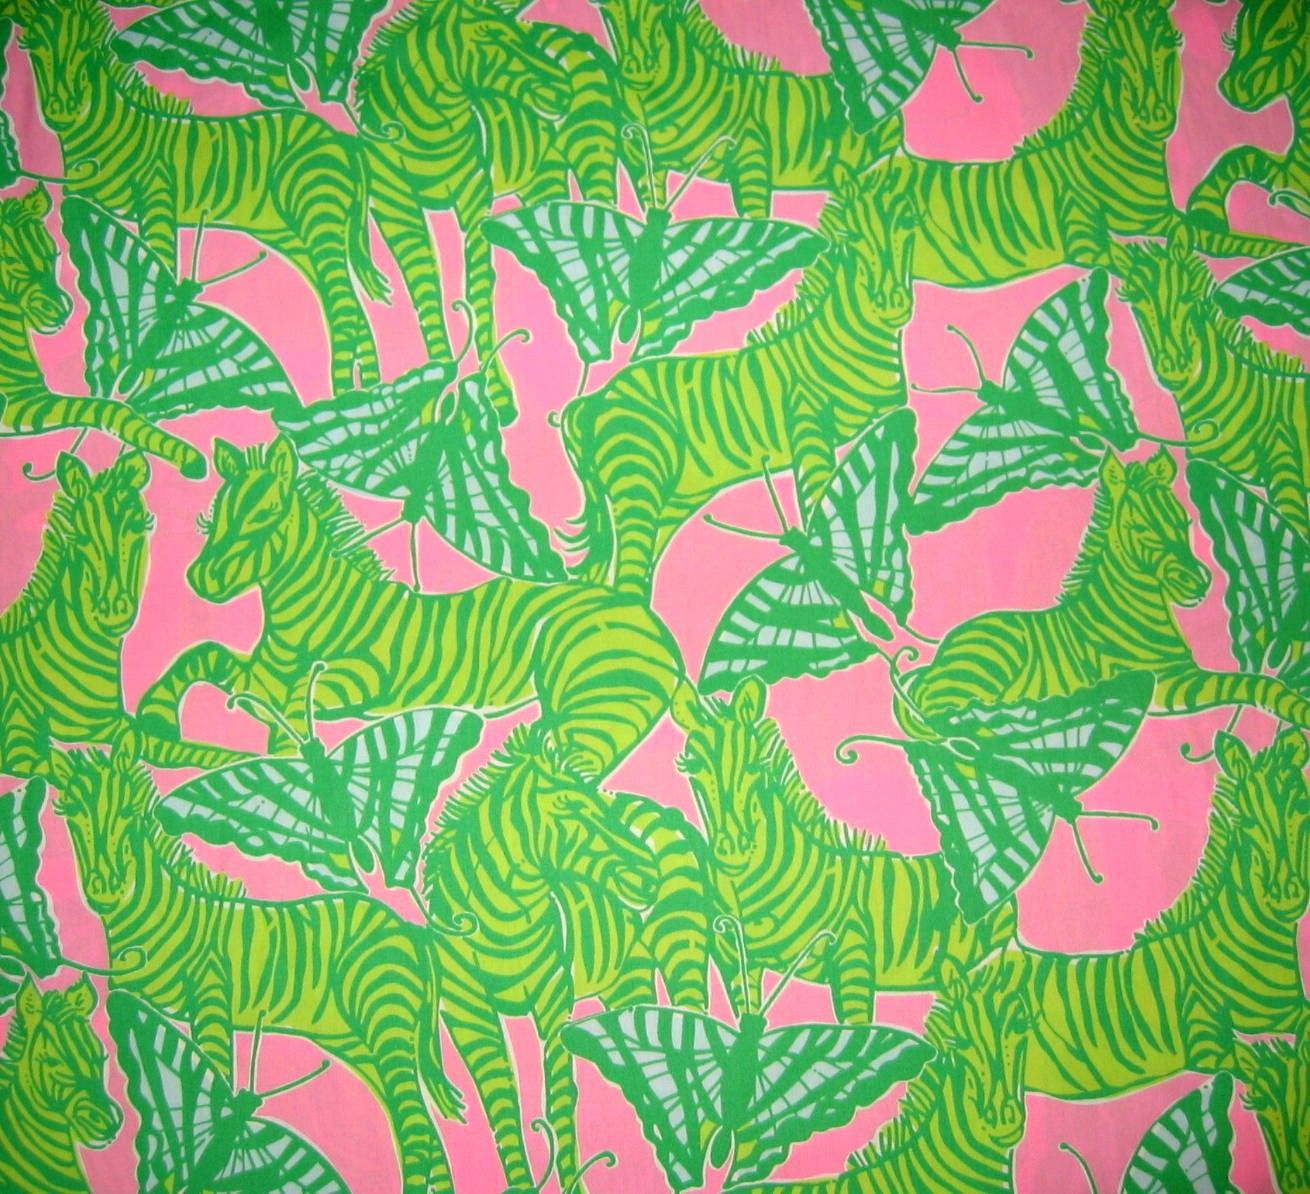 Lilly Pulitzer Fabric Authentic New Lilly Pulitzer Fabric Brazilian Avenue 1 Yard X 57